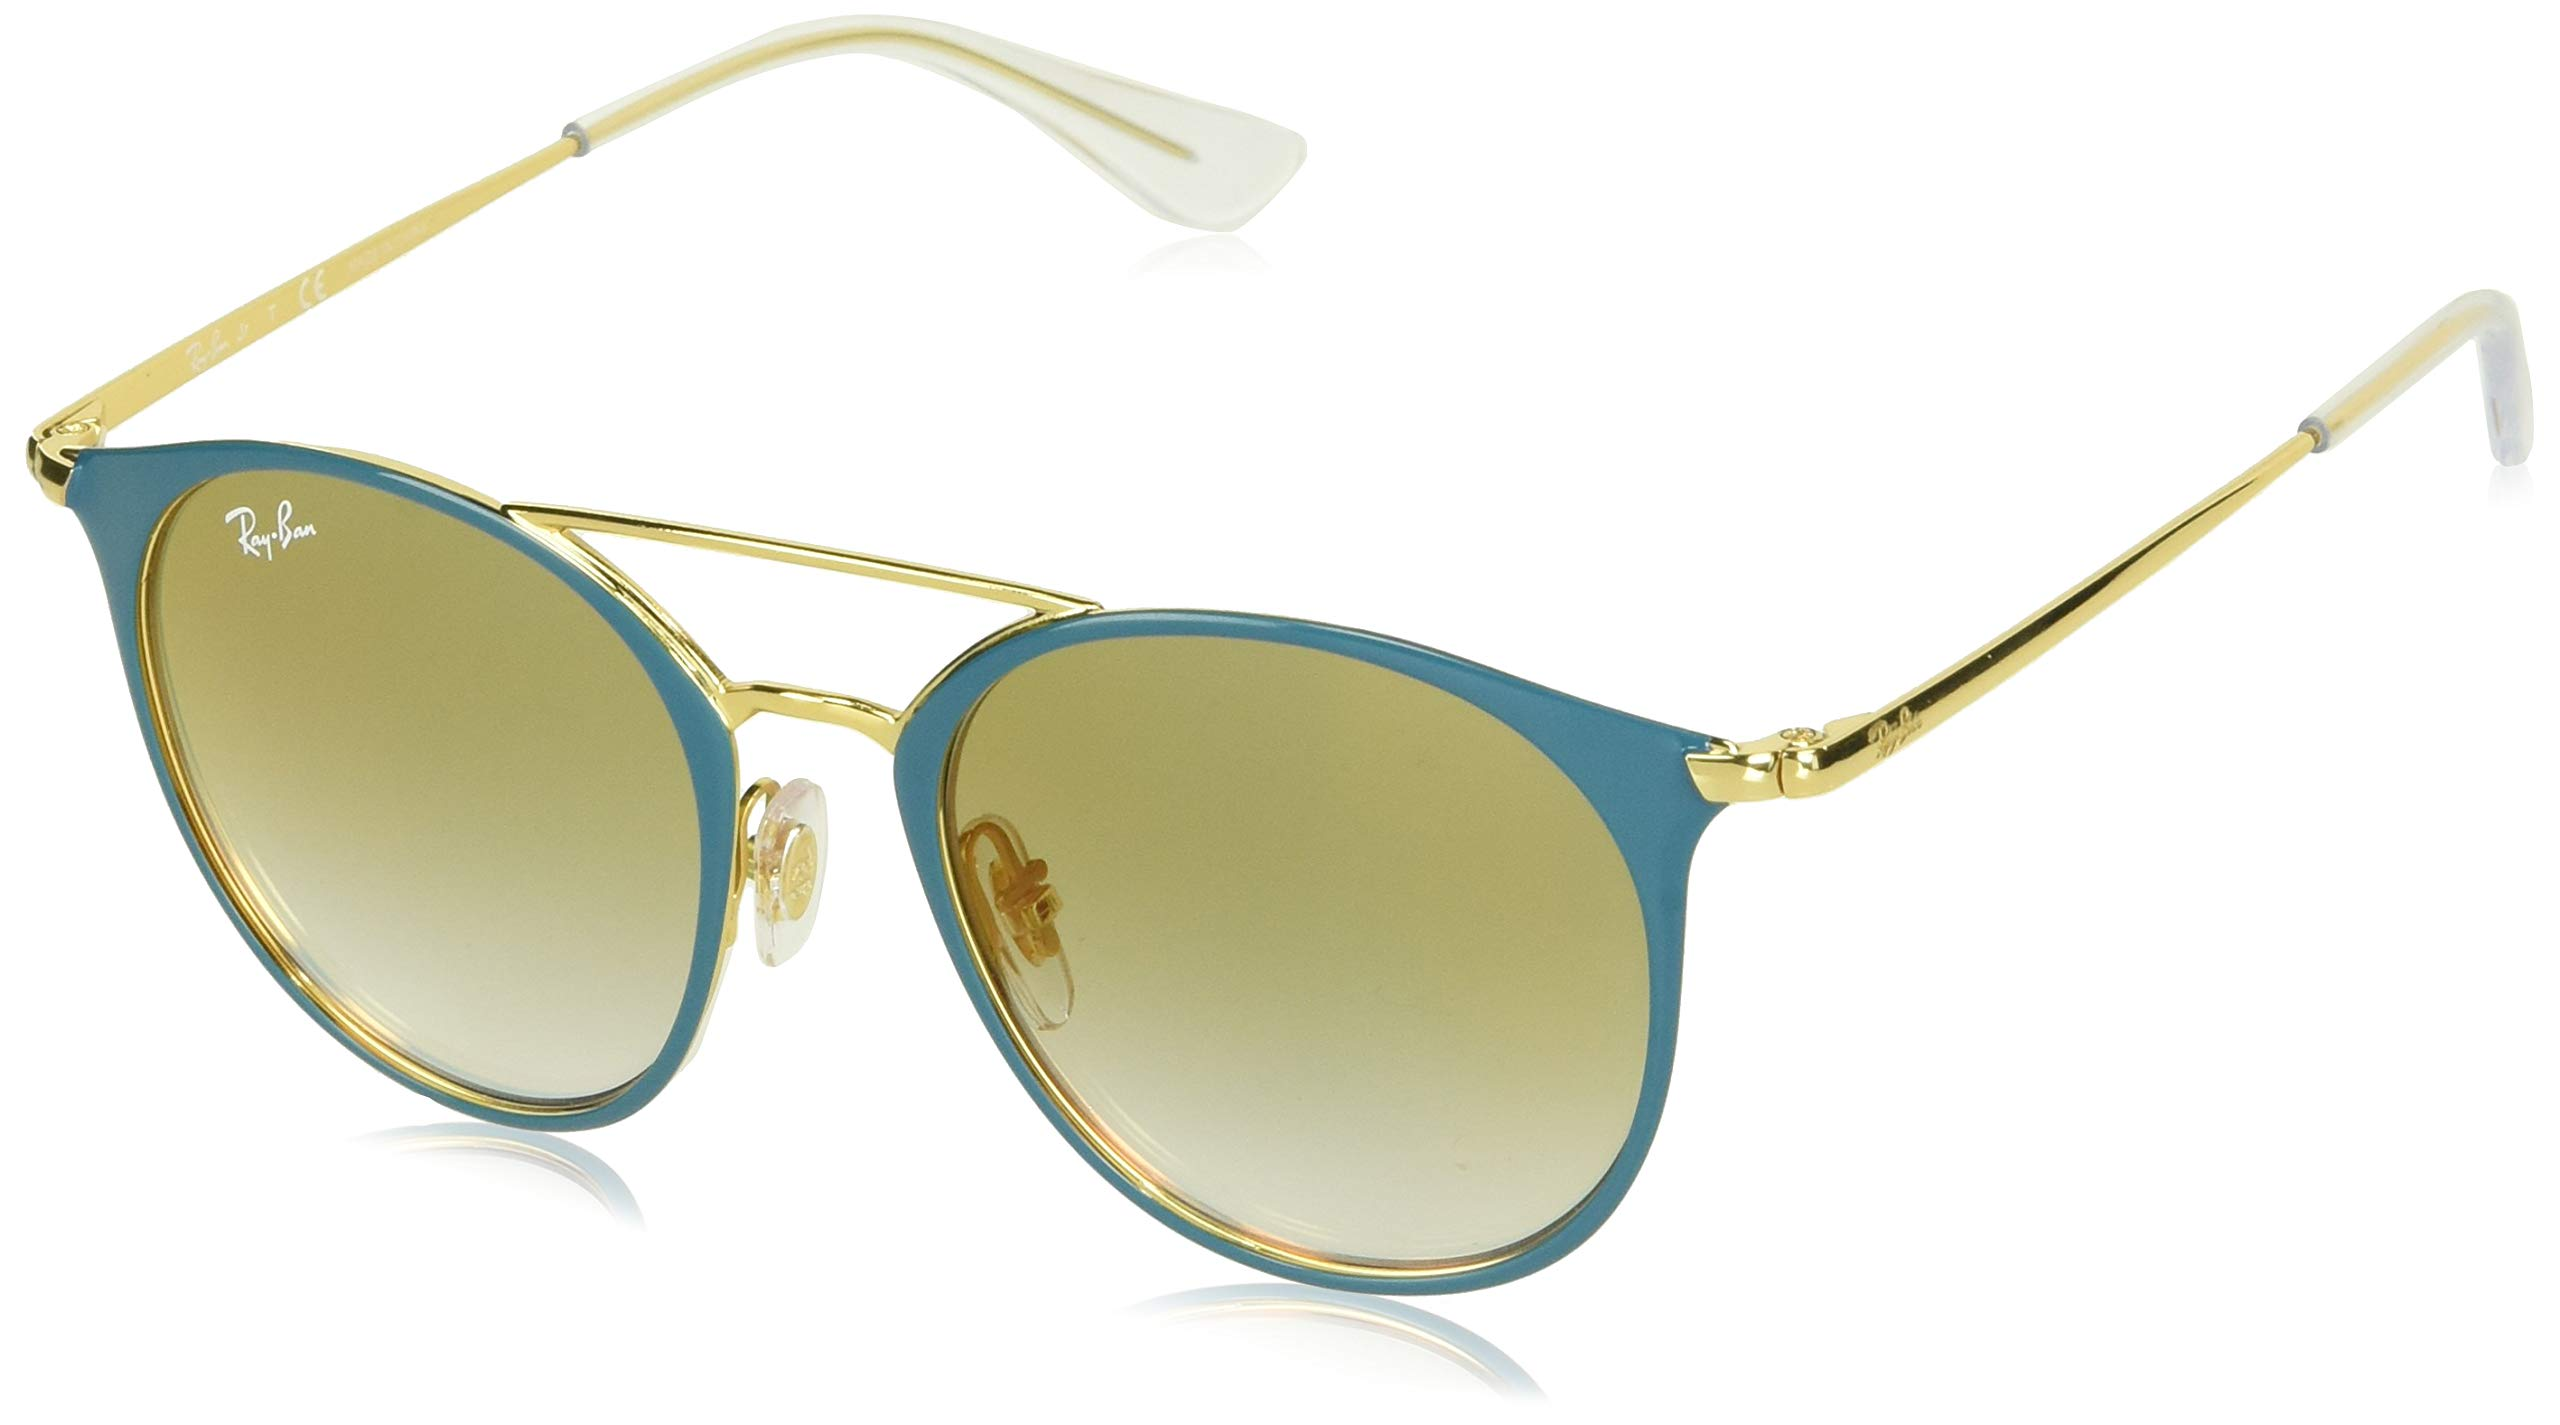 RAY-BAN JUNIOR Kids' RJ9545S Round Kids Sunglasses, Gold On Top Turquoise/Green Red Gradient Mirror, 47 mm by RAY-BAN JUNIOR